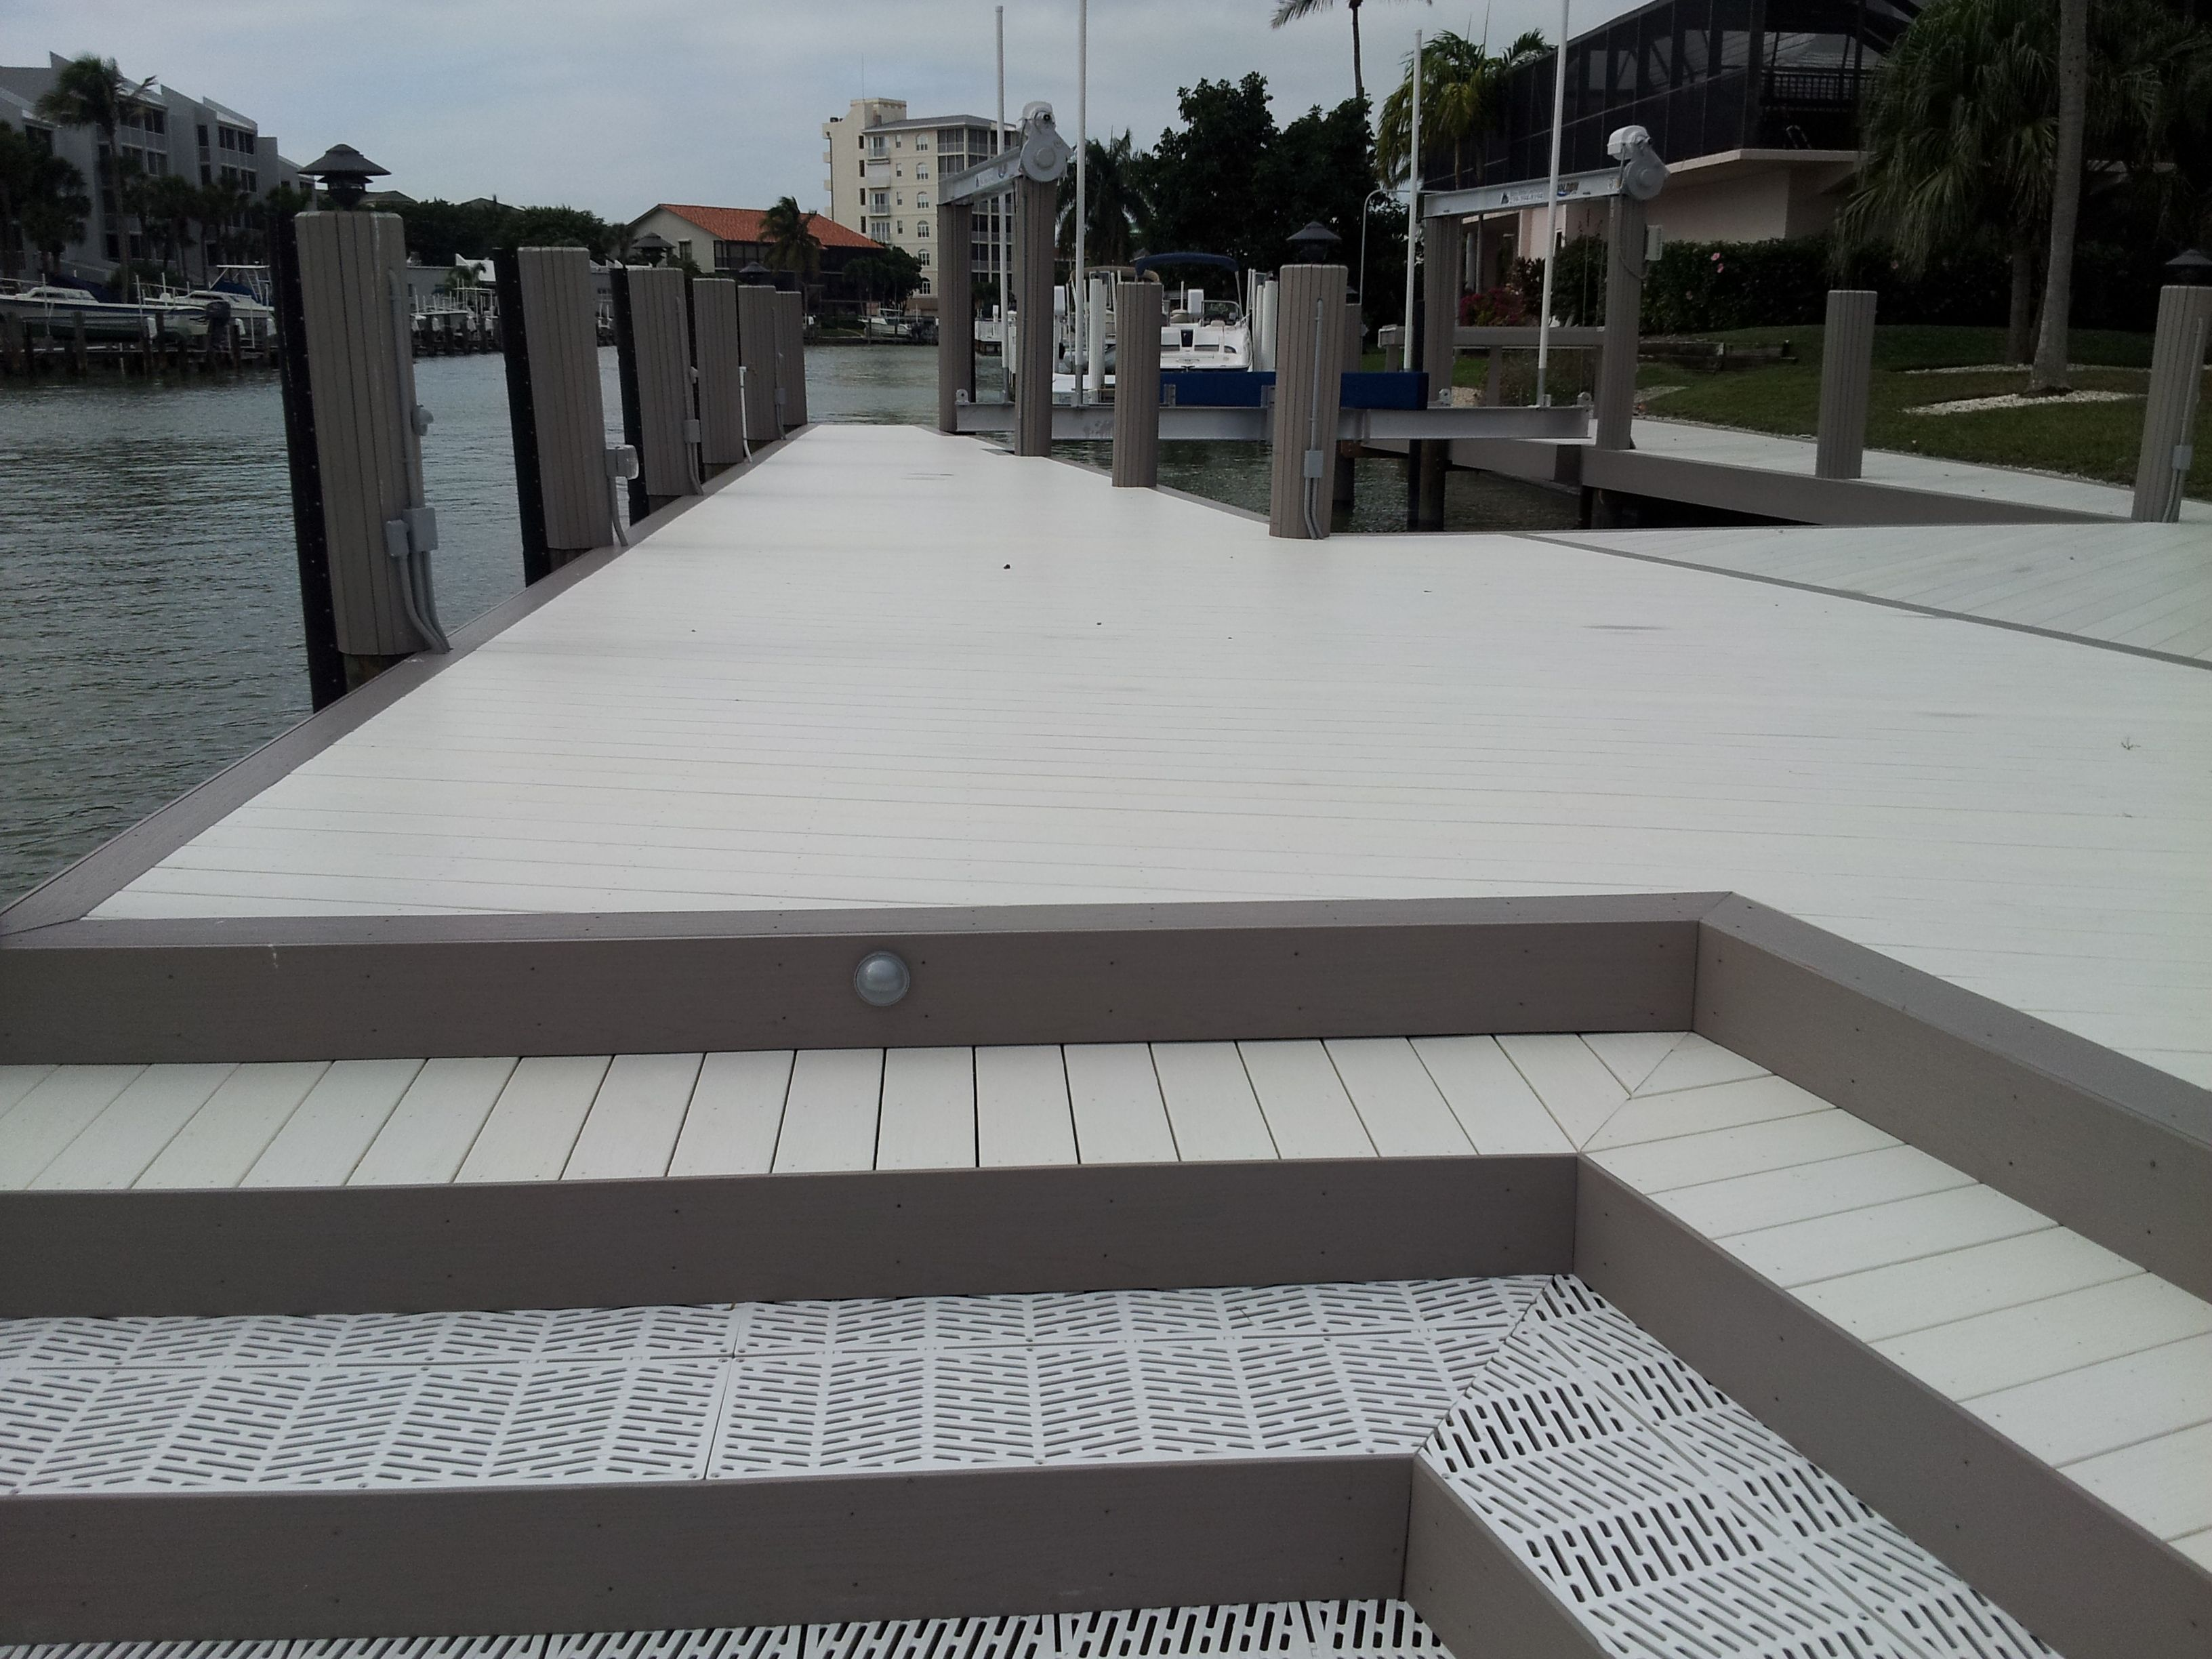 Azek Decking With Surestep Grating Www Shorelinelumber Com With Images Azek Decking Deck Azek